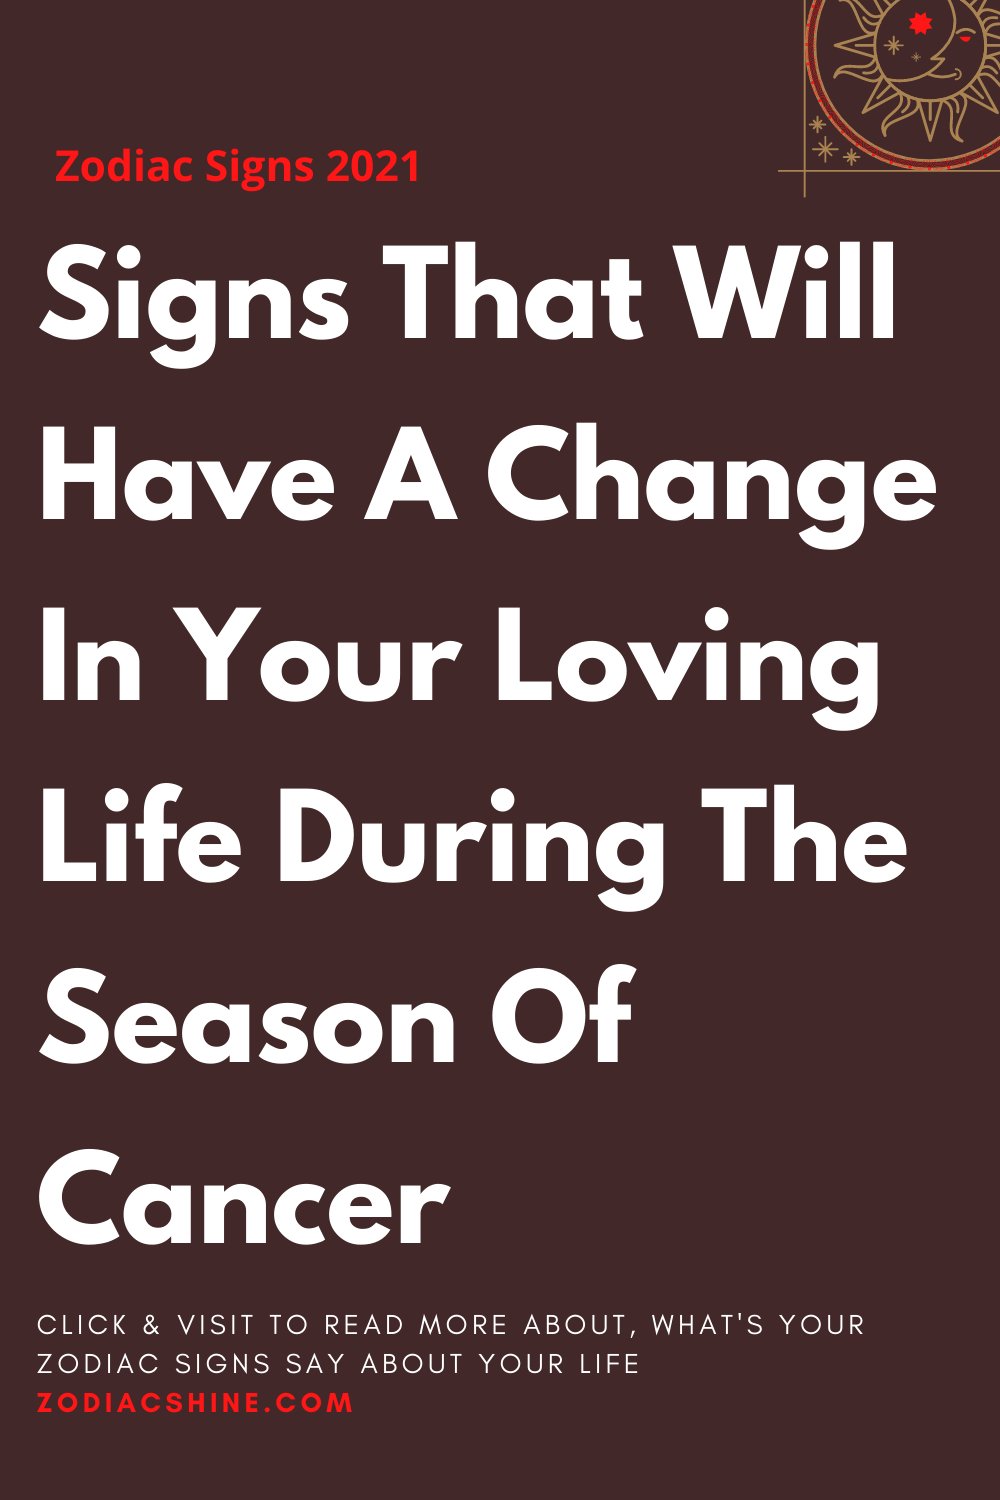 Signs That Will Have A Change In Your Loving Life During The Season Of Cancer